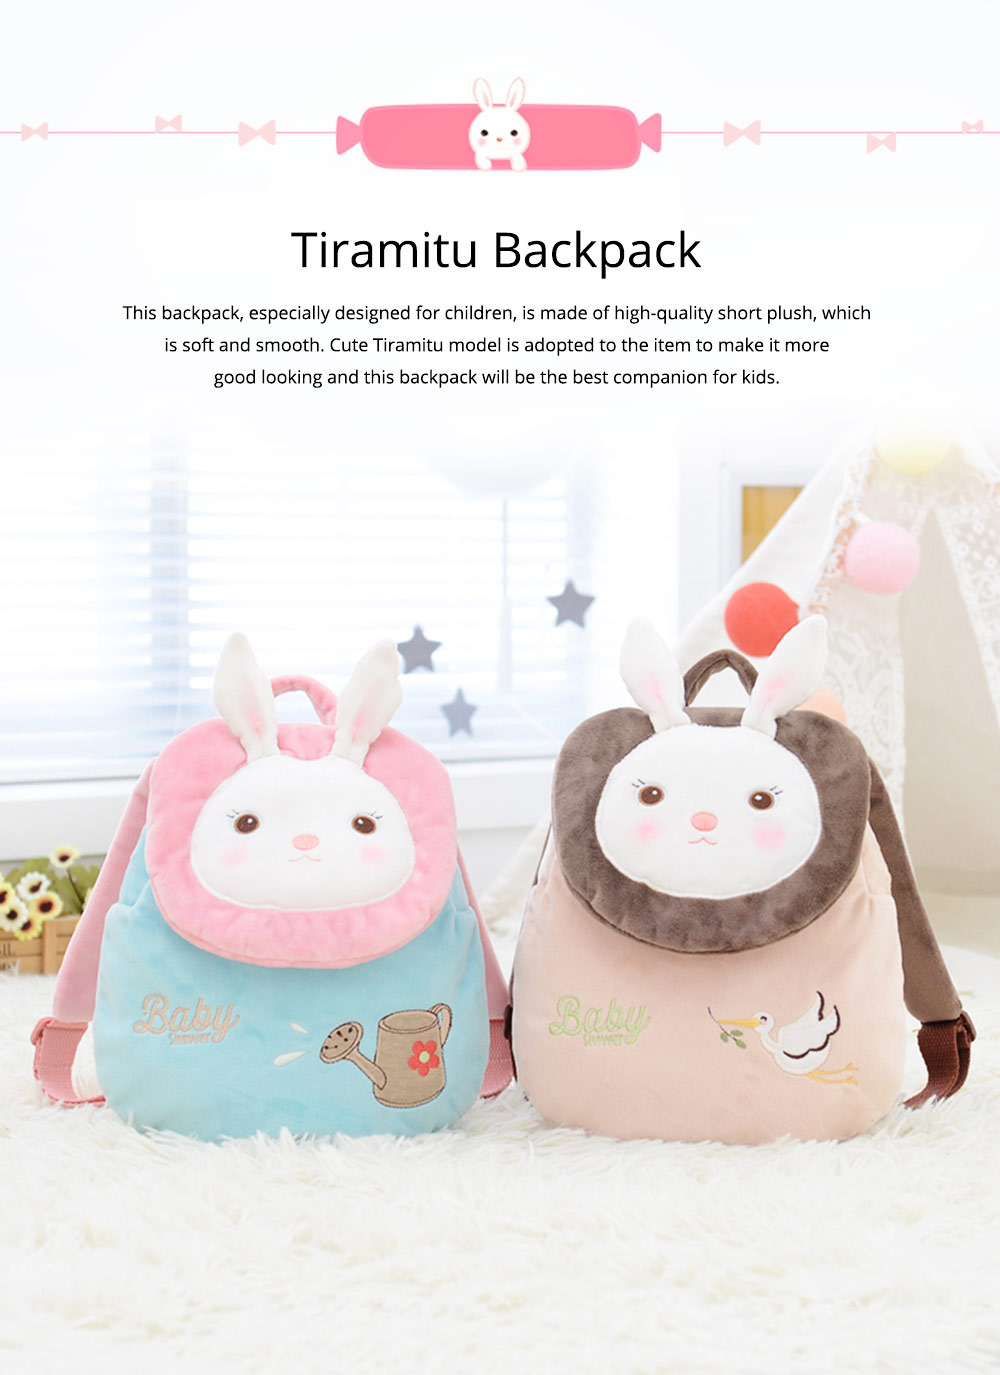 Cute Tiramitu Little Backpack for 1-3 Years Old Children, Large Capacity Smooth Short Plush Rabbit Rucksack Birthday Present for Boys Girls 0